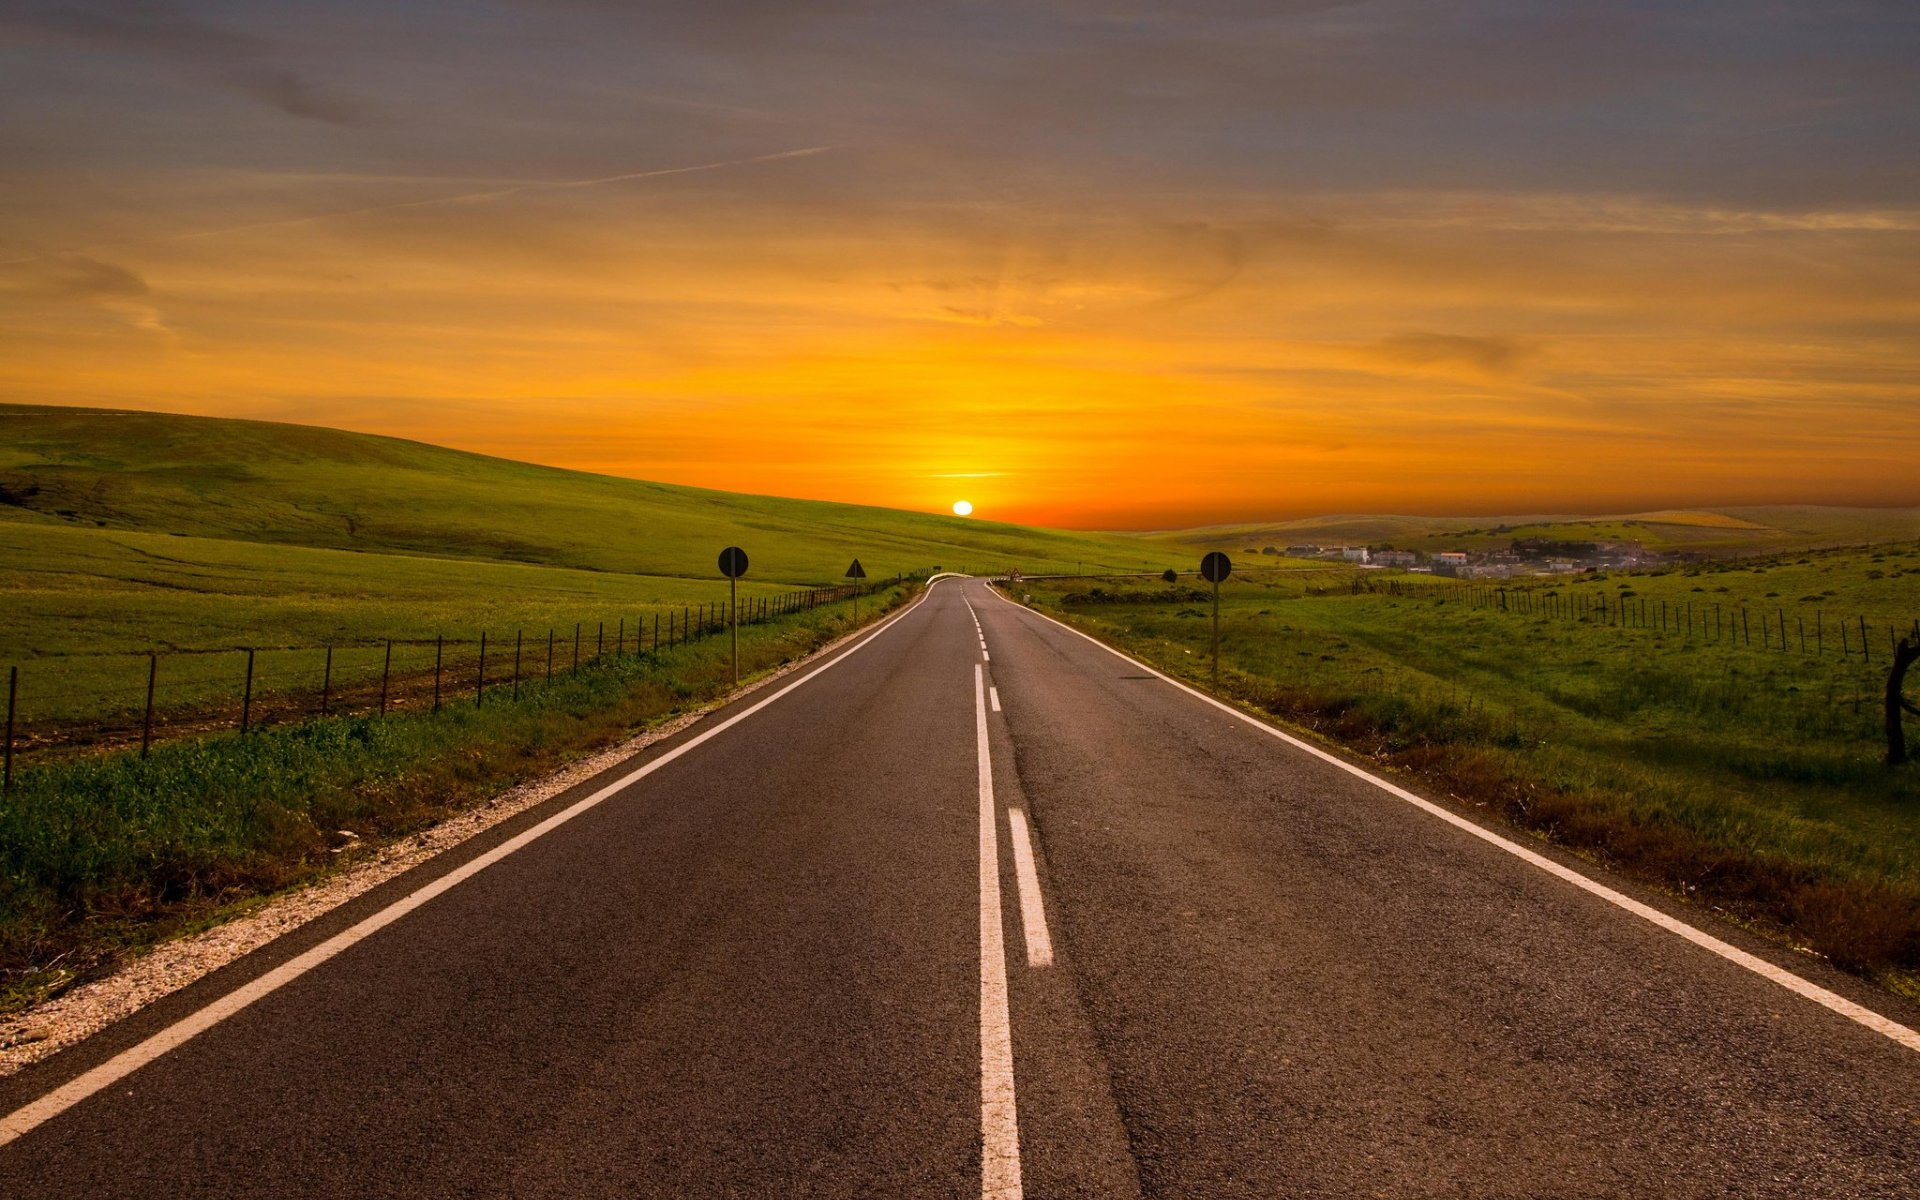 Road Sunset Wallpaper Orange Sunset Road Fie...